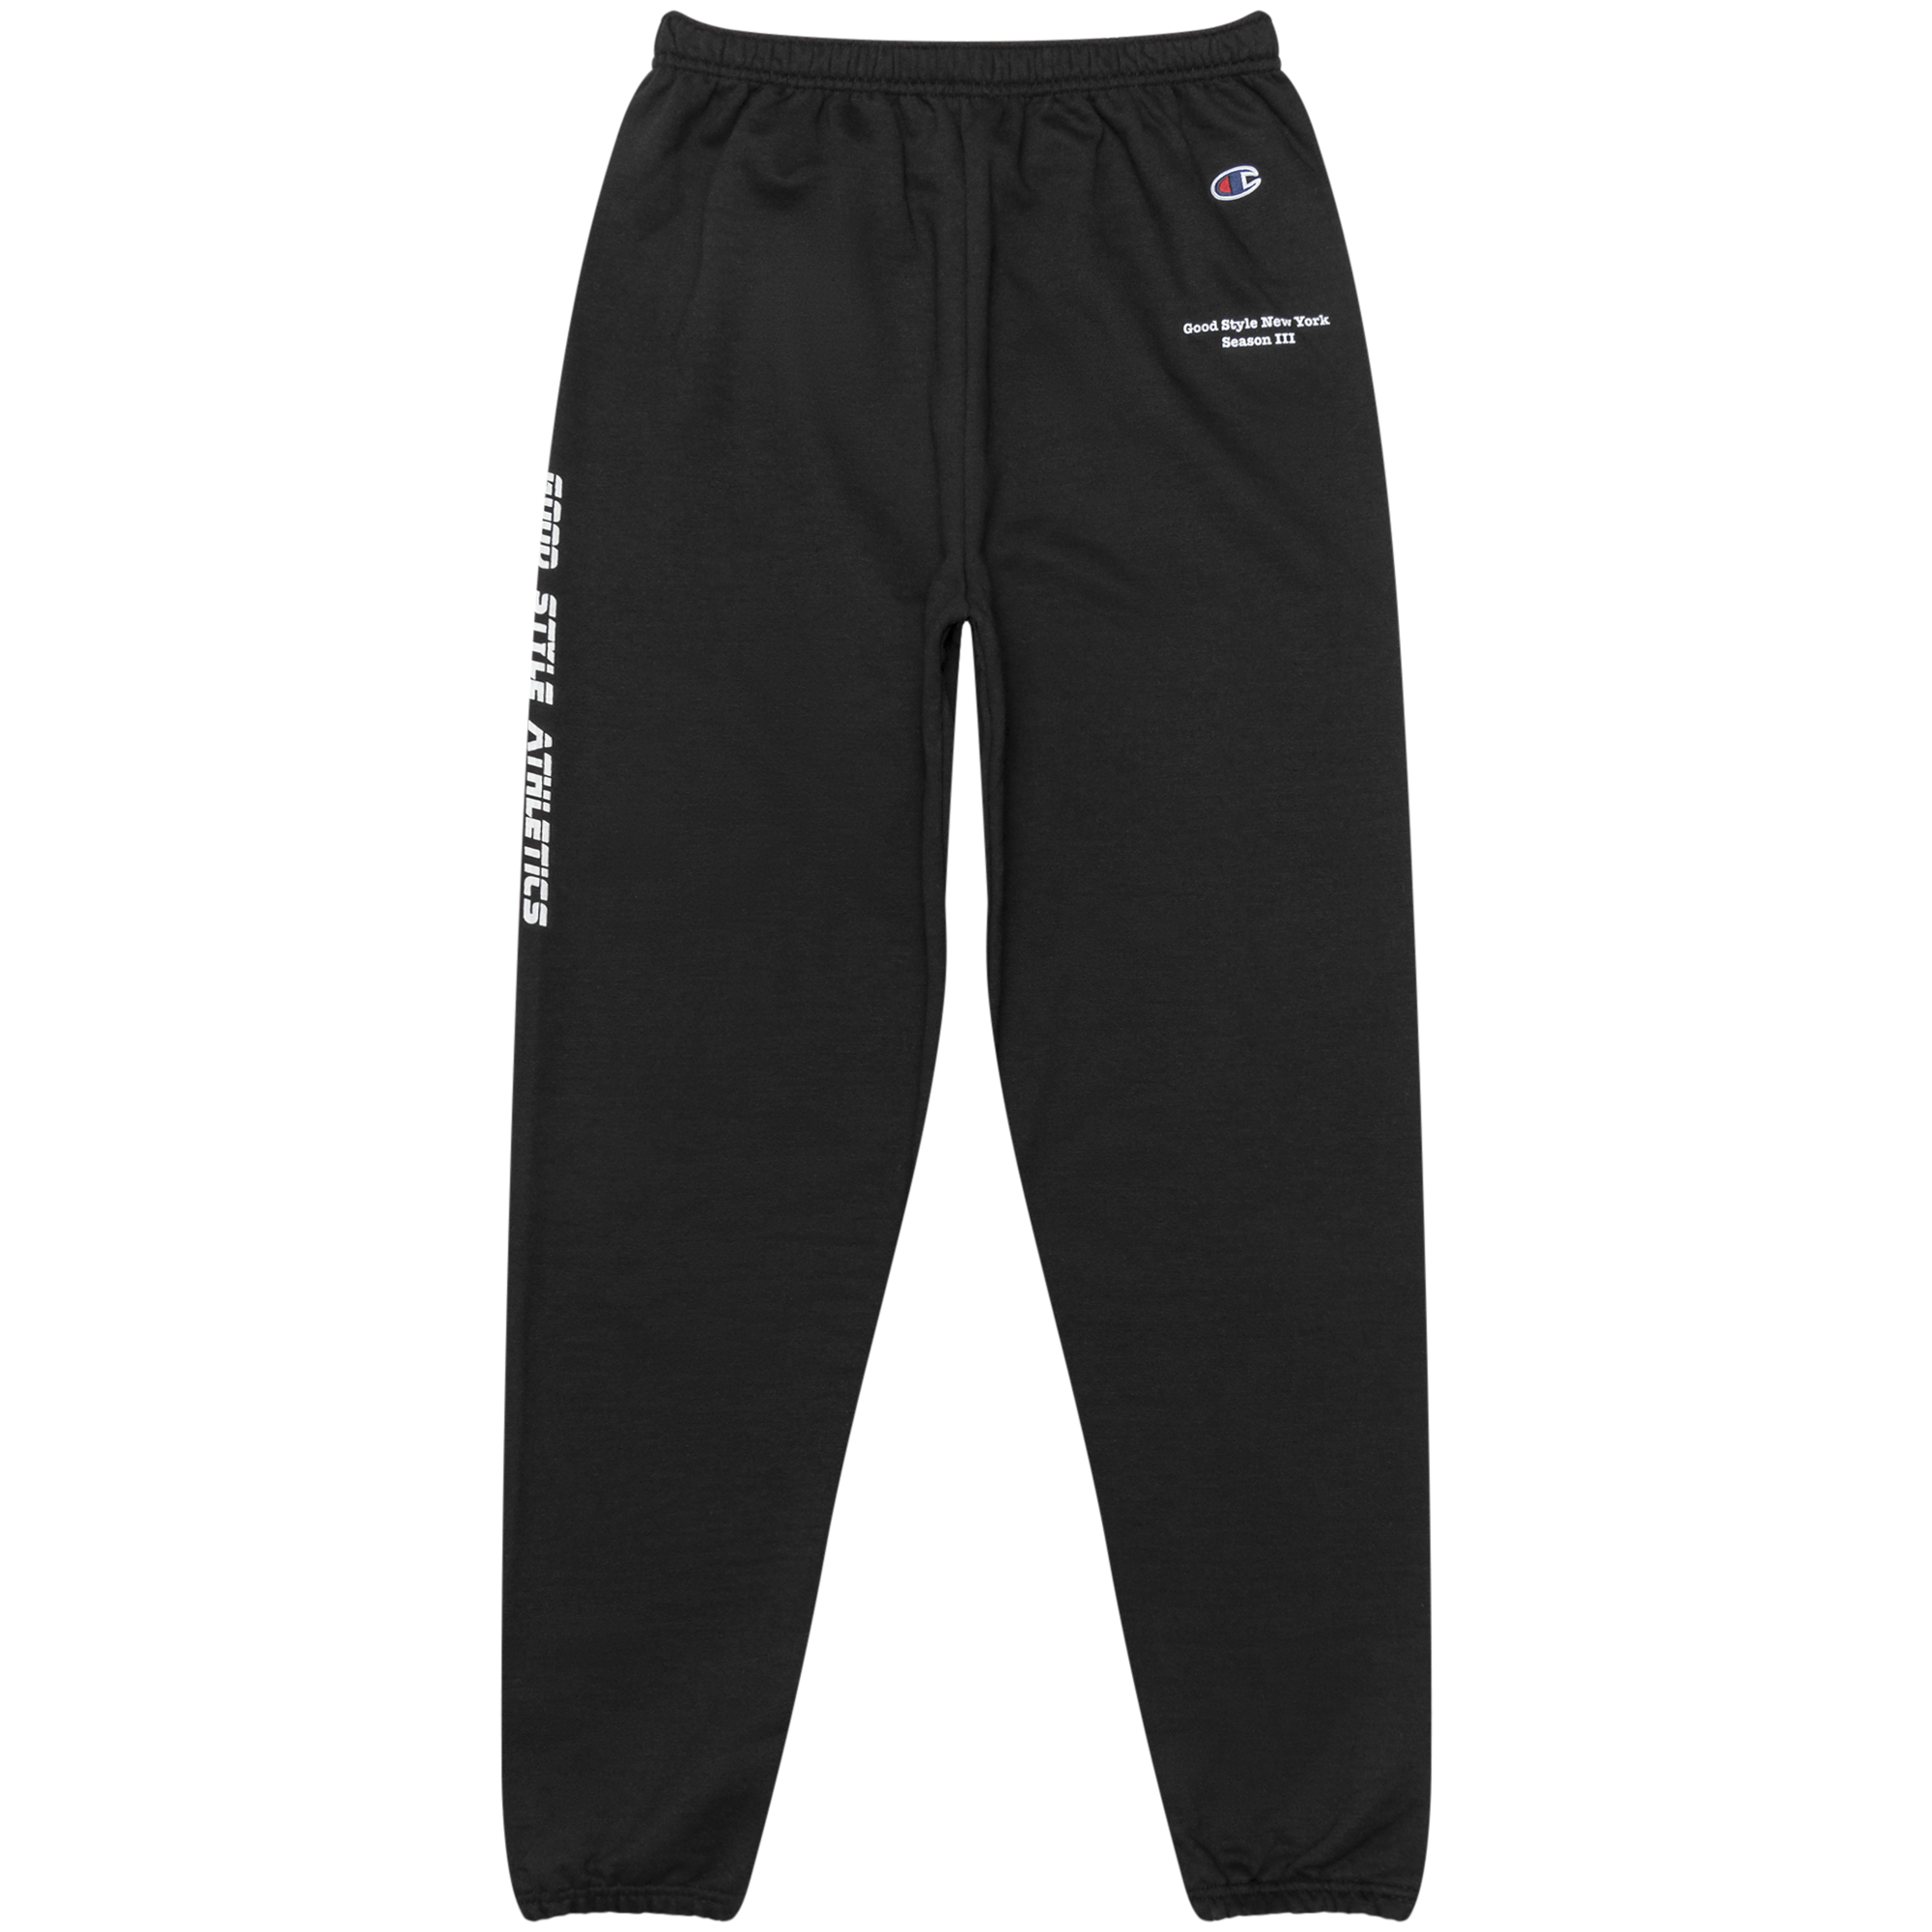 Black SSN 3 Sweatpant